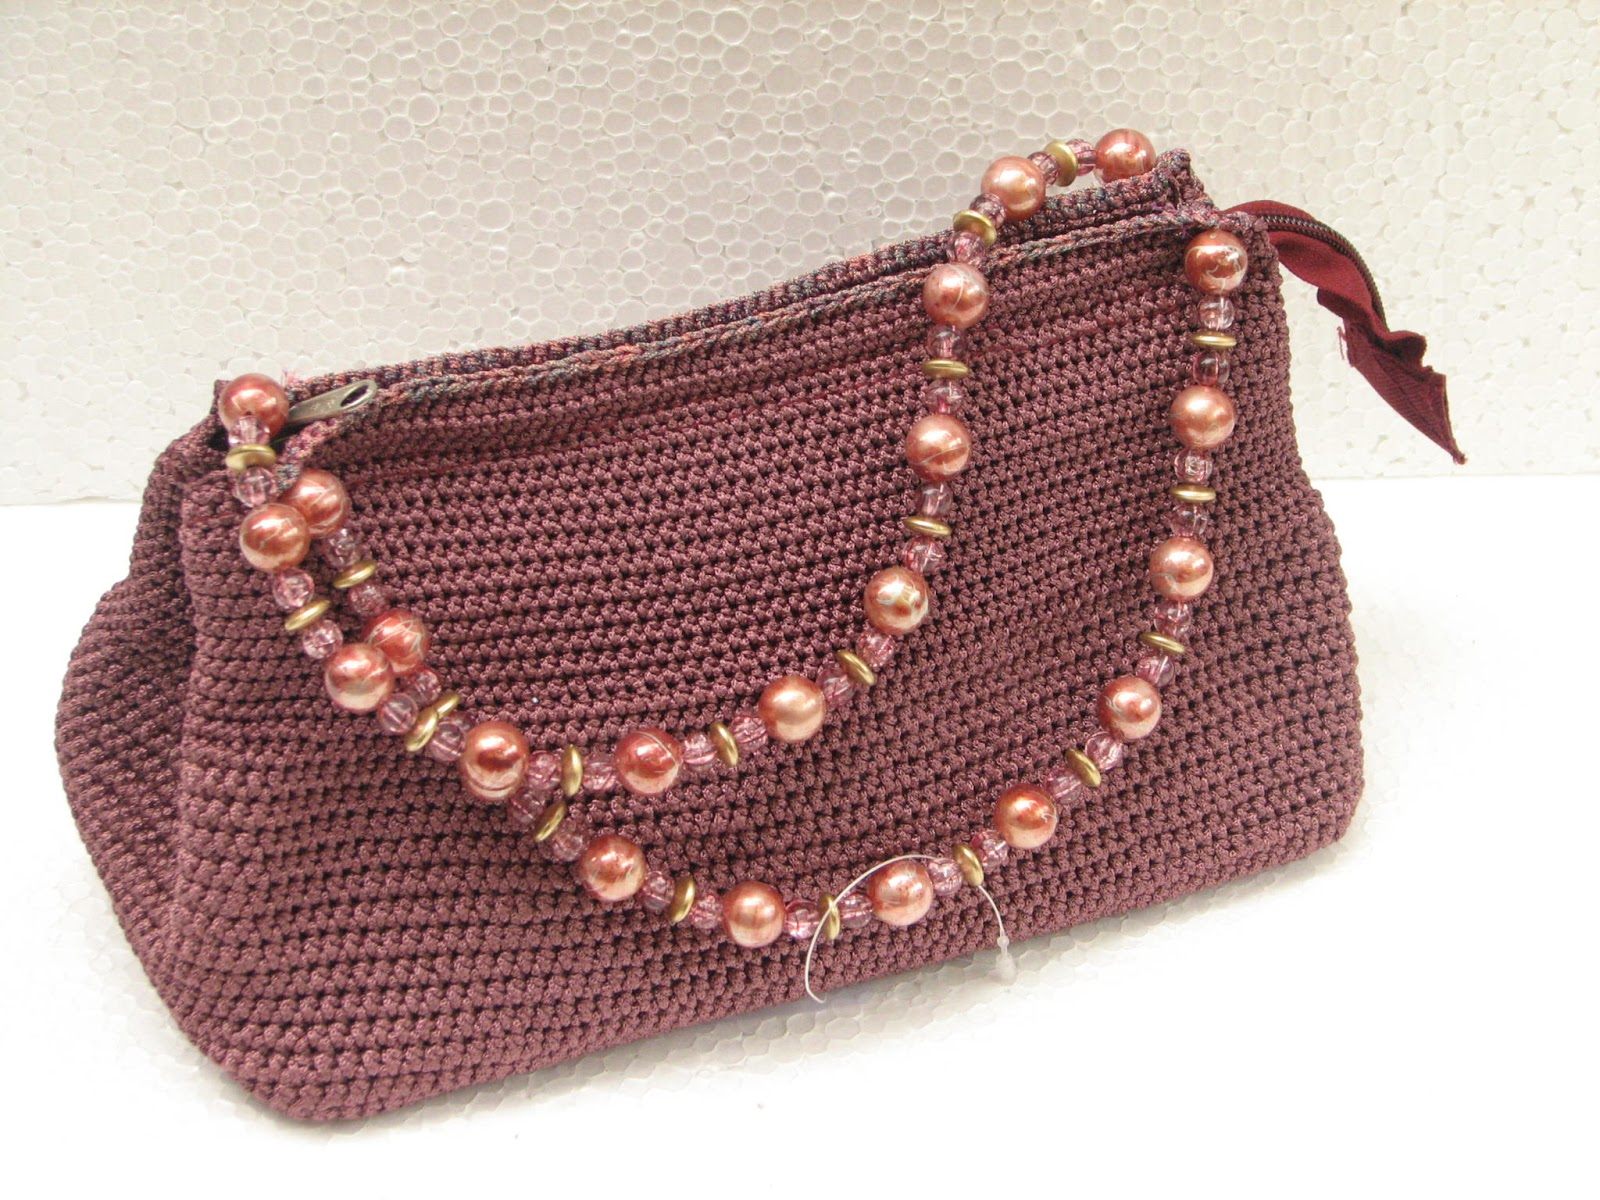 Handmade Crochet Handbags : DISHA FOUNDATION : Handmade crochet bags